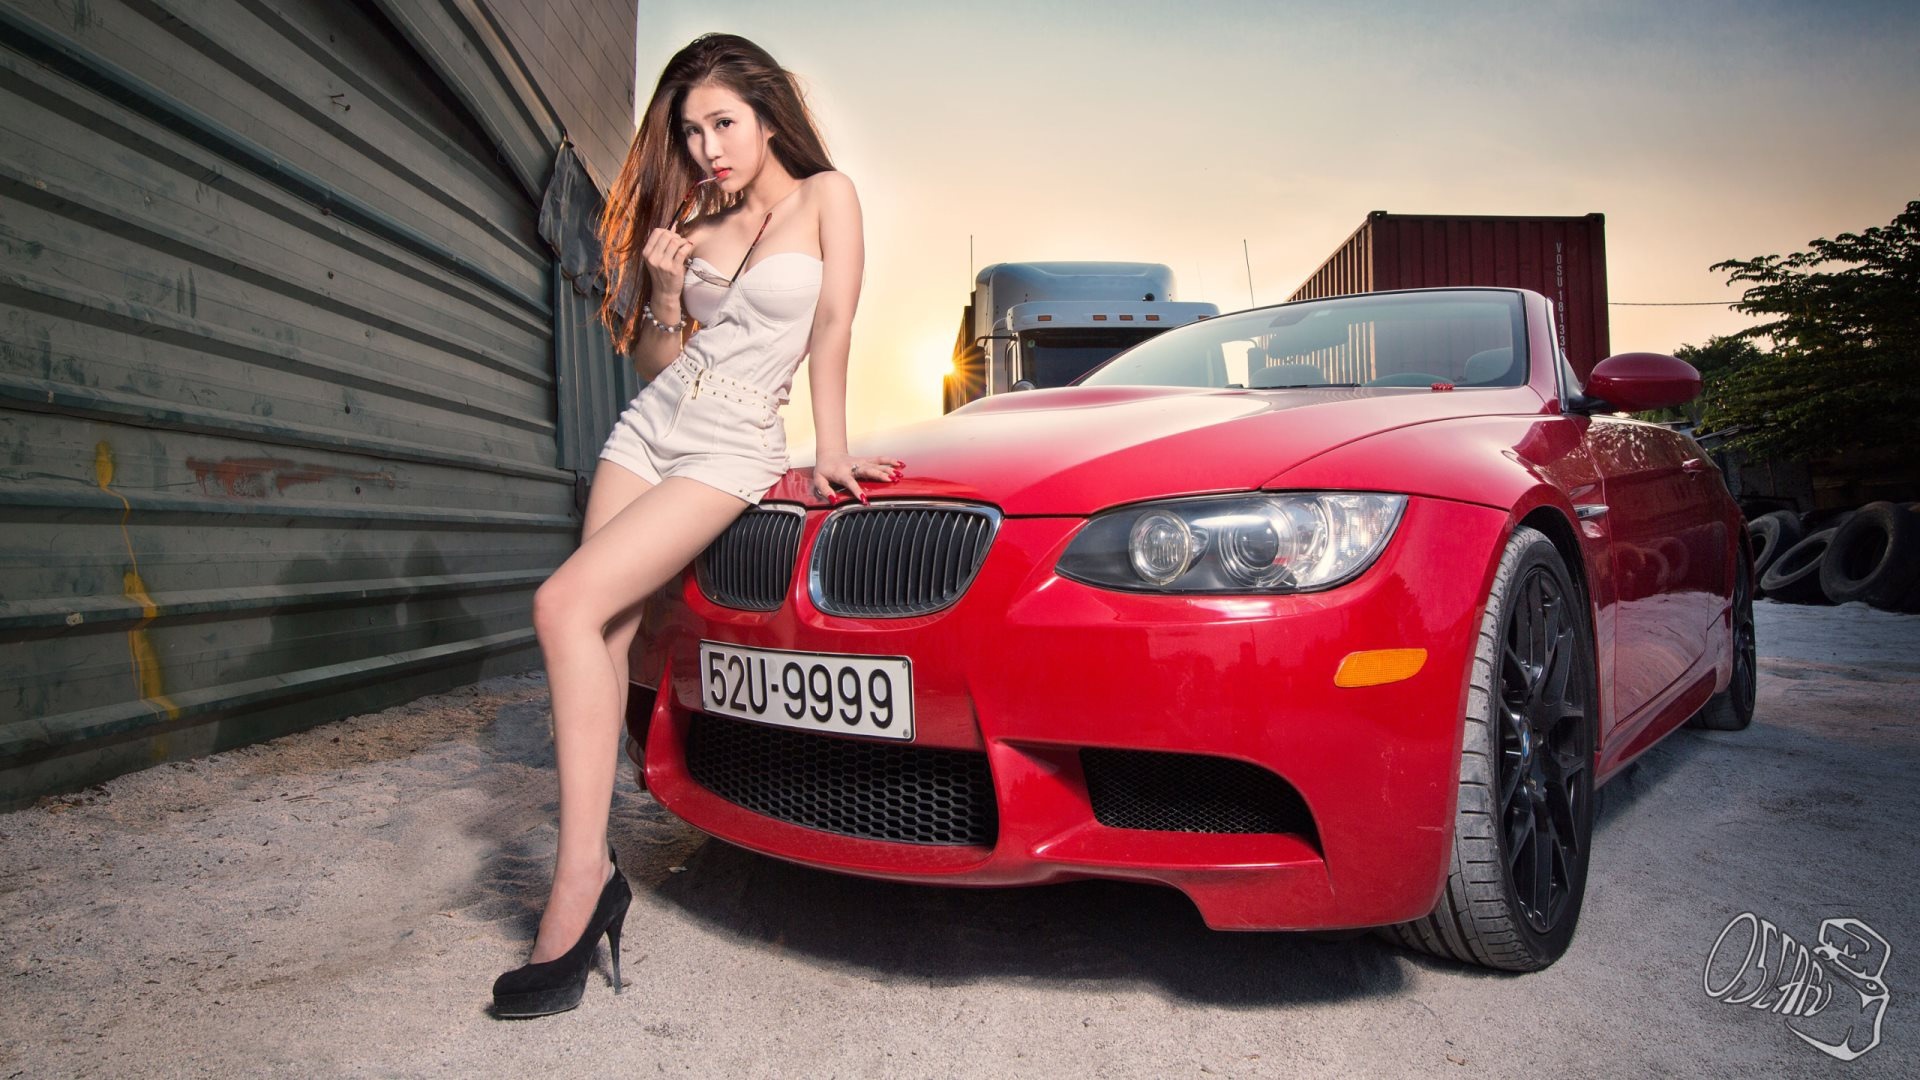 Sexy-Cars-and-Girls-Wallpaper-and-Pictures-15